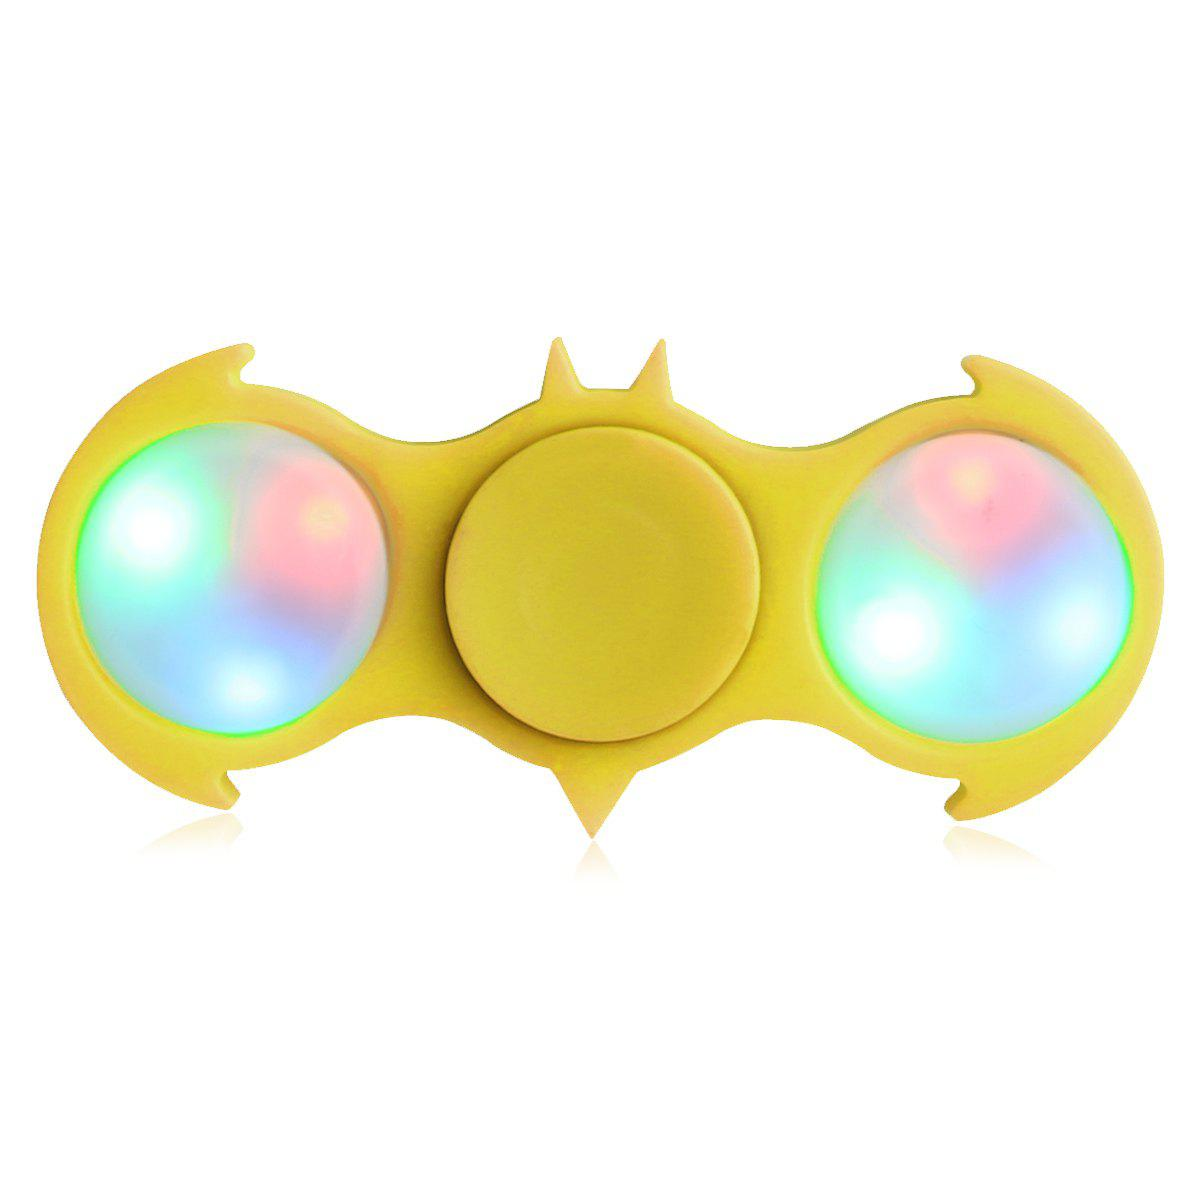 Colorful Flashing LED Lights Fiddle Toy Bat Fidget Spinner - Jaune